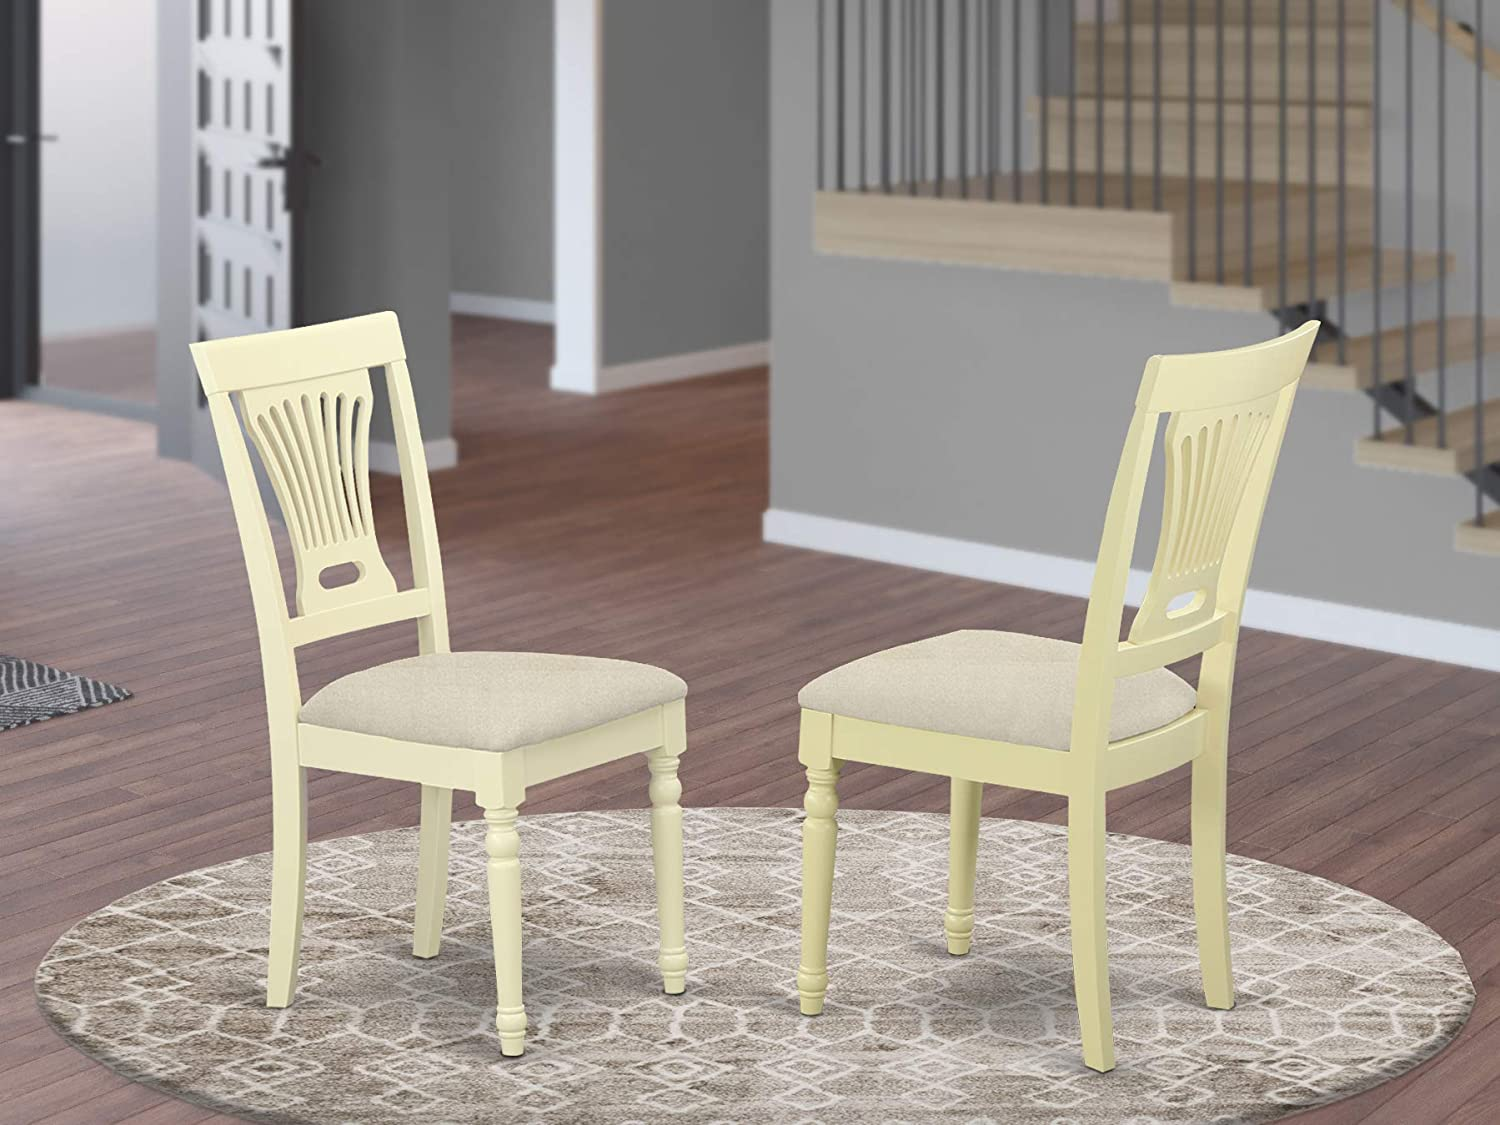 East West Furniture PVC WHI C Plainville dining chair set of 2 Microfiber Upholstery Seat and Buttermilk Hardwood Structure modern dining room chairs